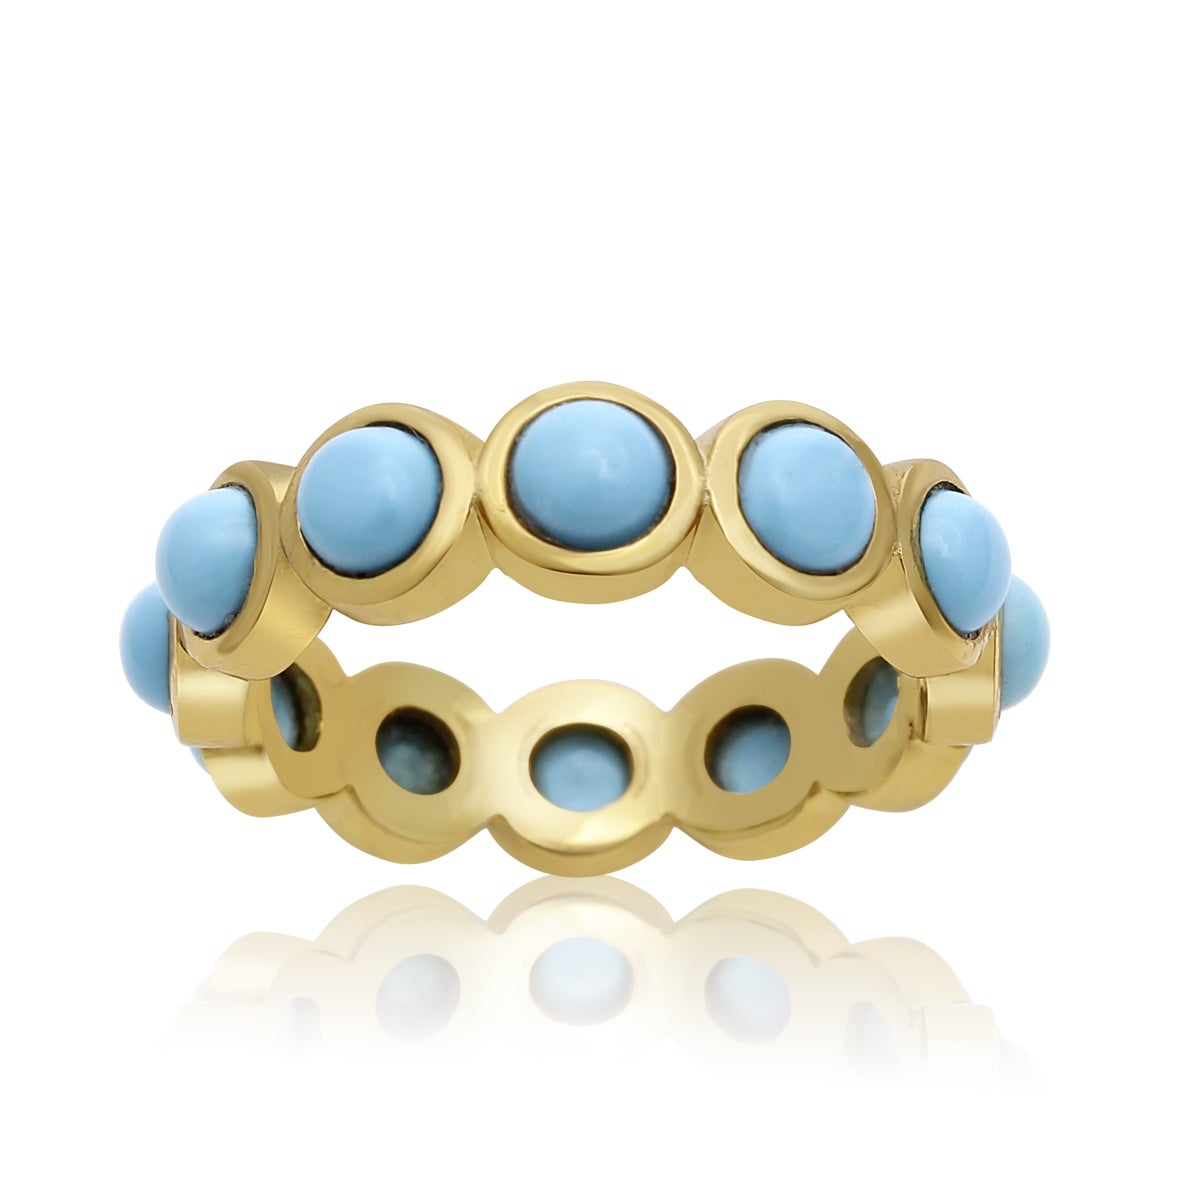 10 TGW Turquoise Eternity Ring In Yellow Gold Over Sterli...